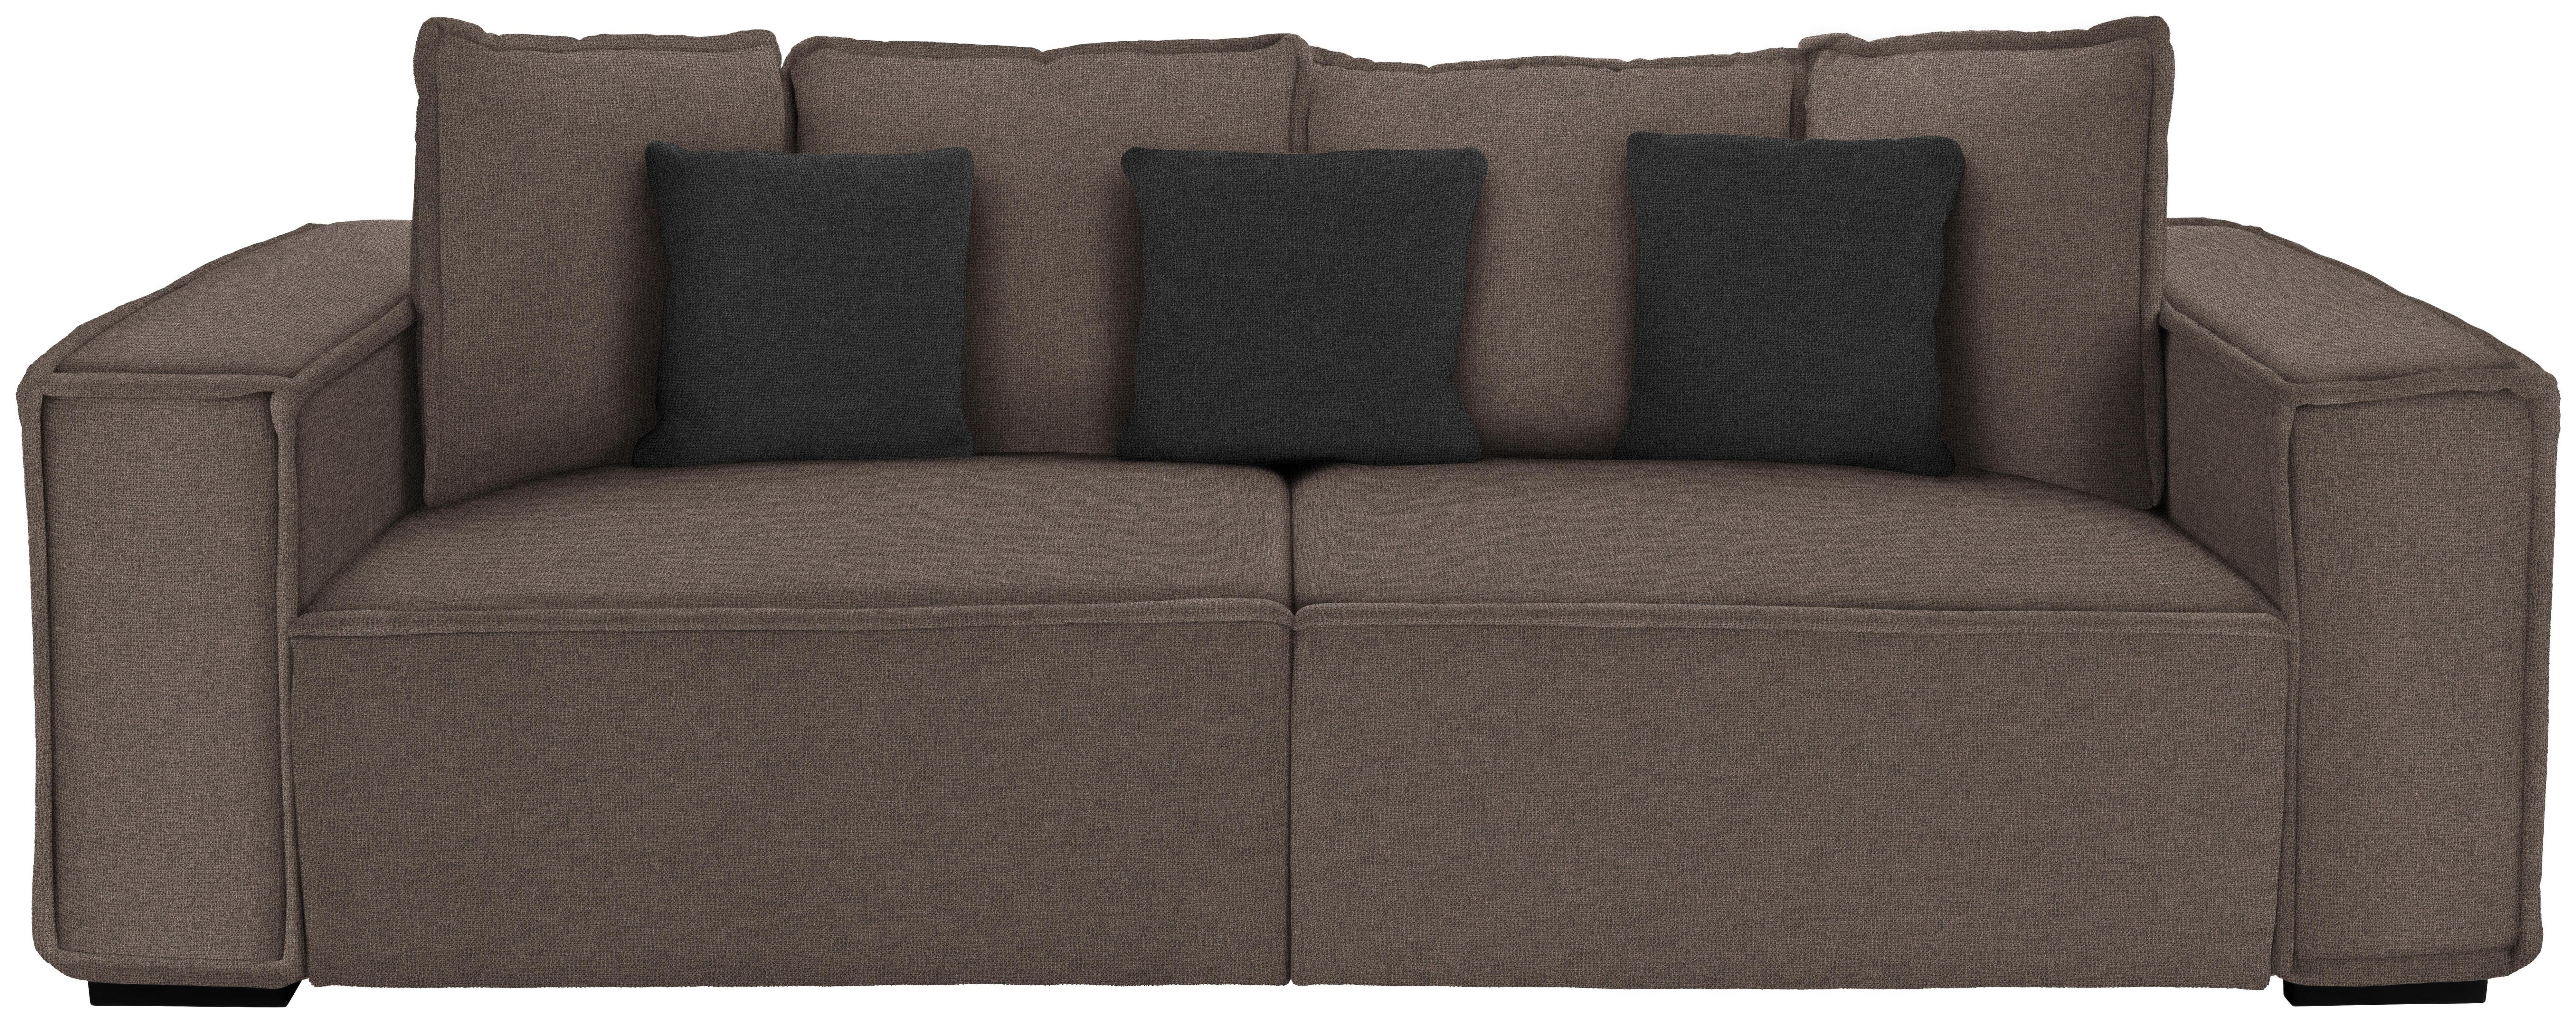 Bigsofa SURF in Taupe